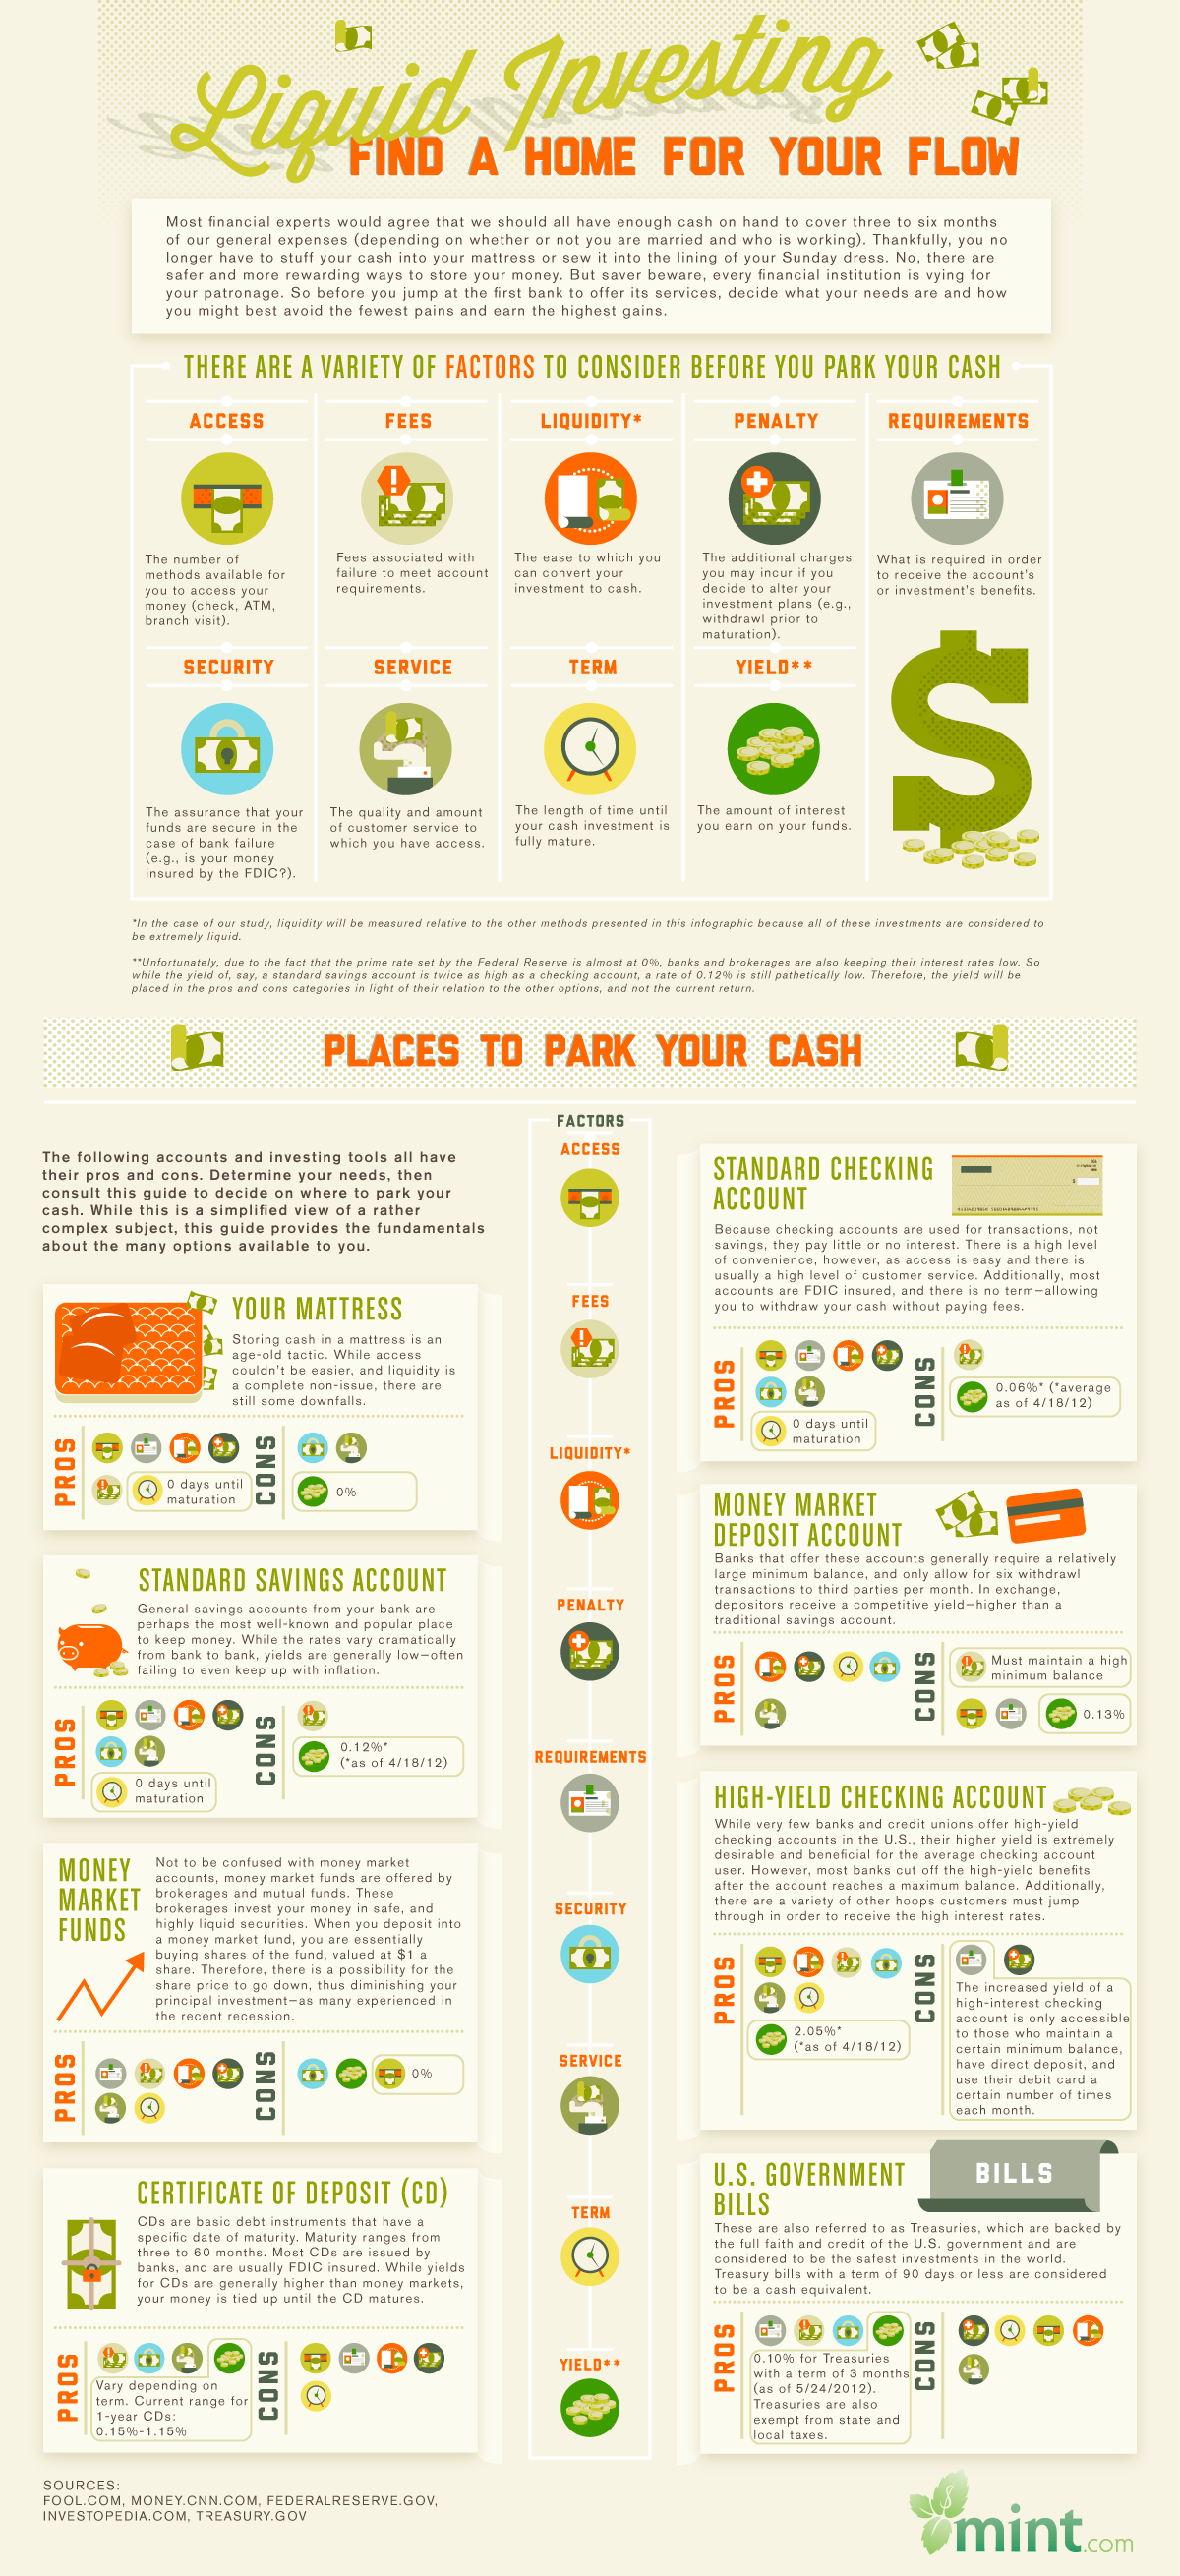 Liquid investing a visual guide to finding a home for your cash liquid investing a visual guide to finding a home for your cash flow infographic xflitez Choice Image